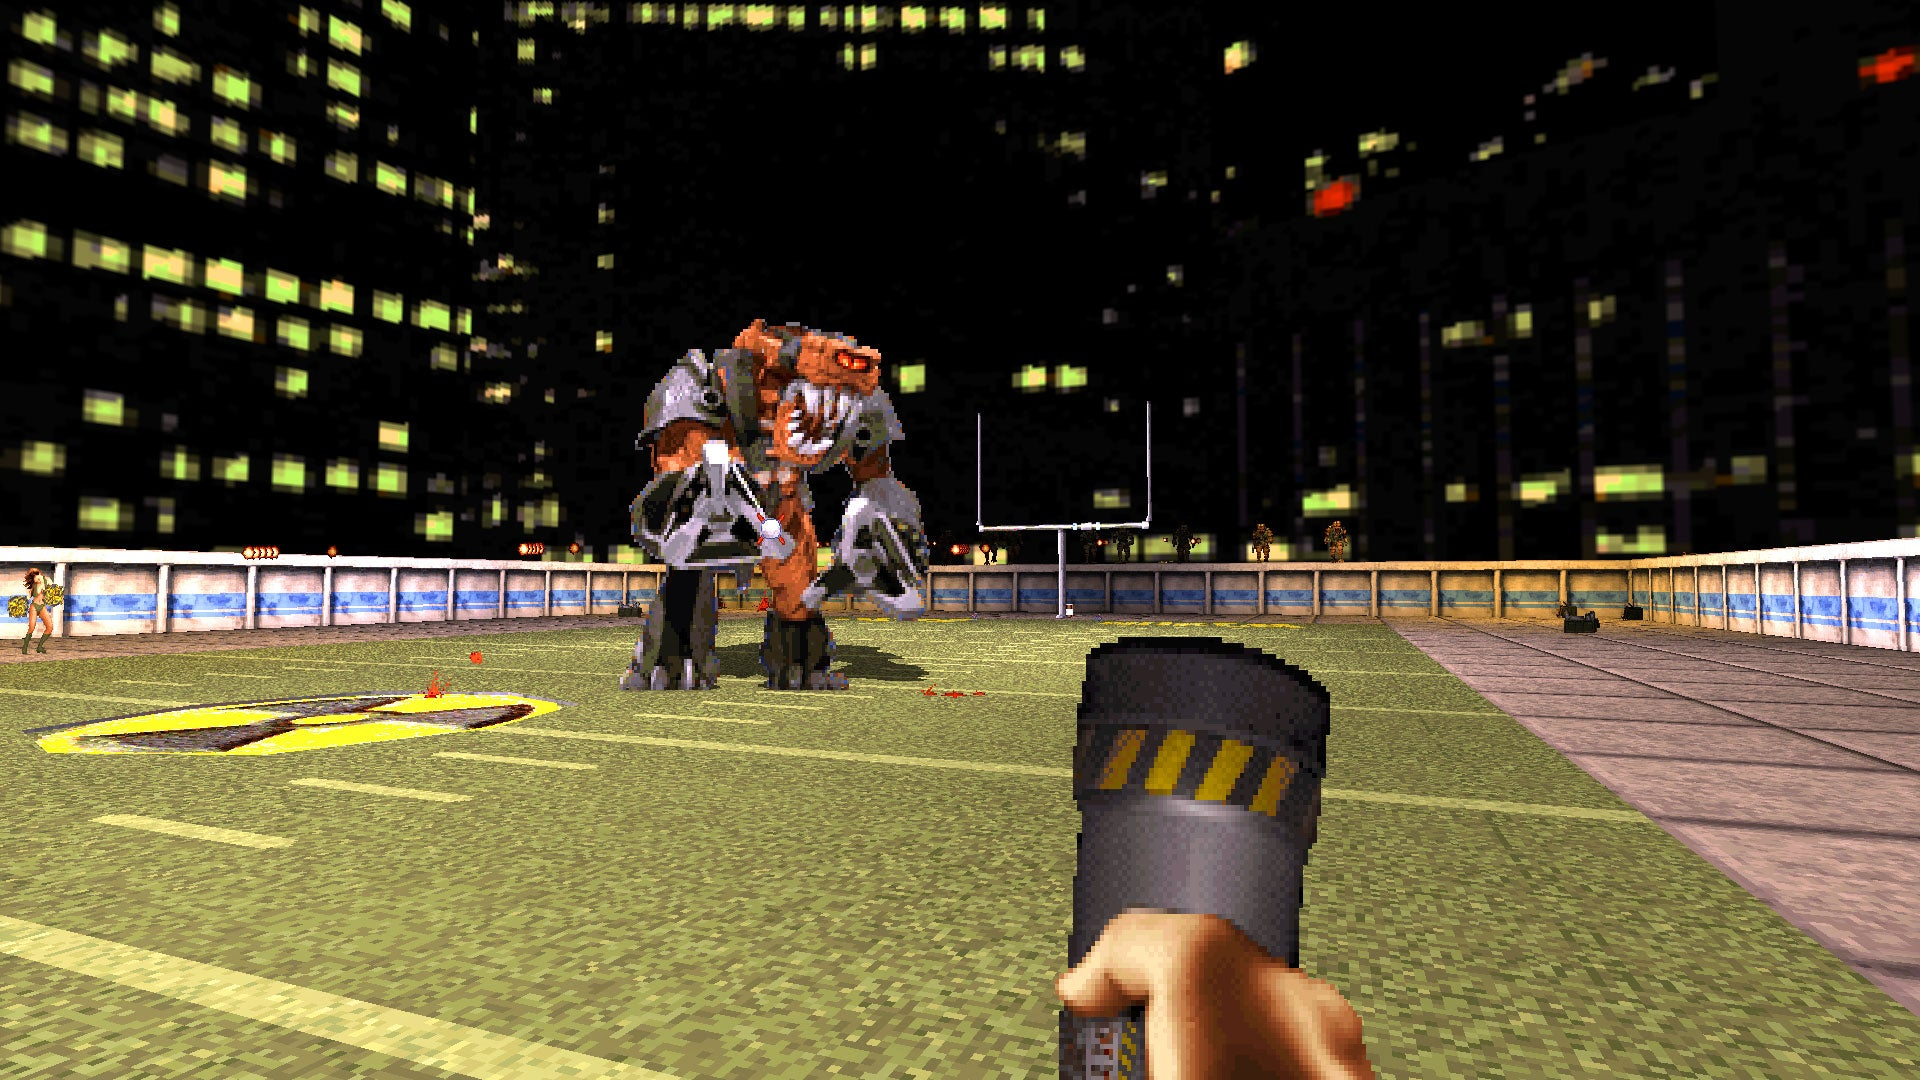 Duke Nukem 3D Returns To Consoles And PC With An All-New Episode